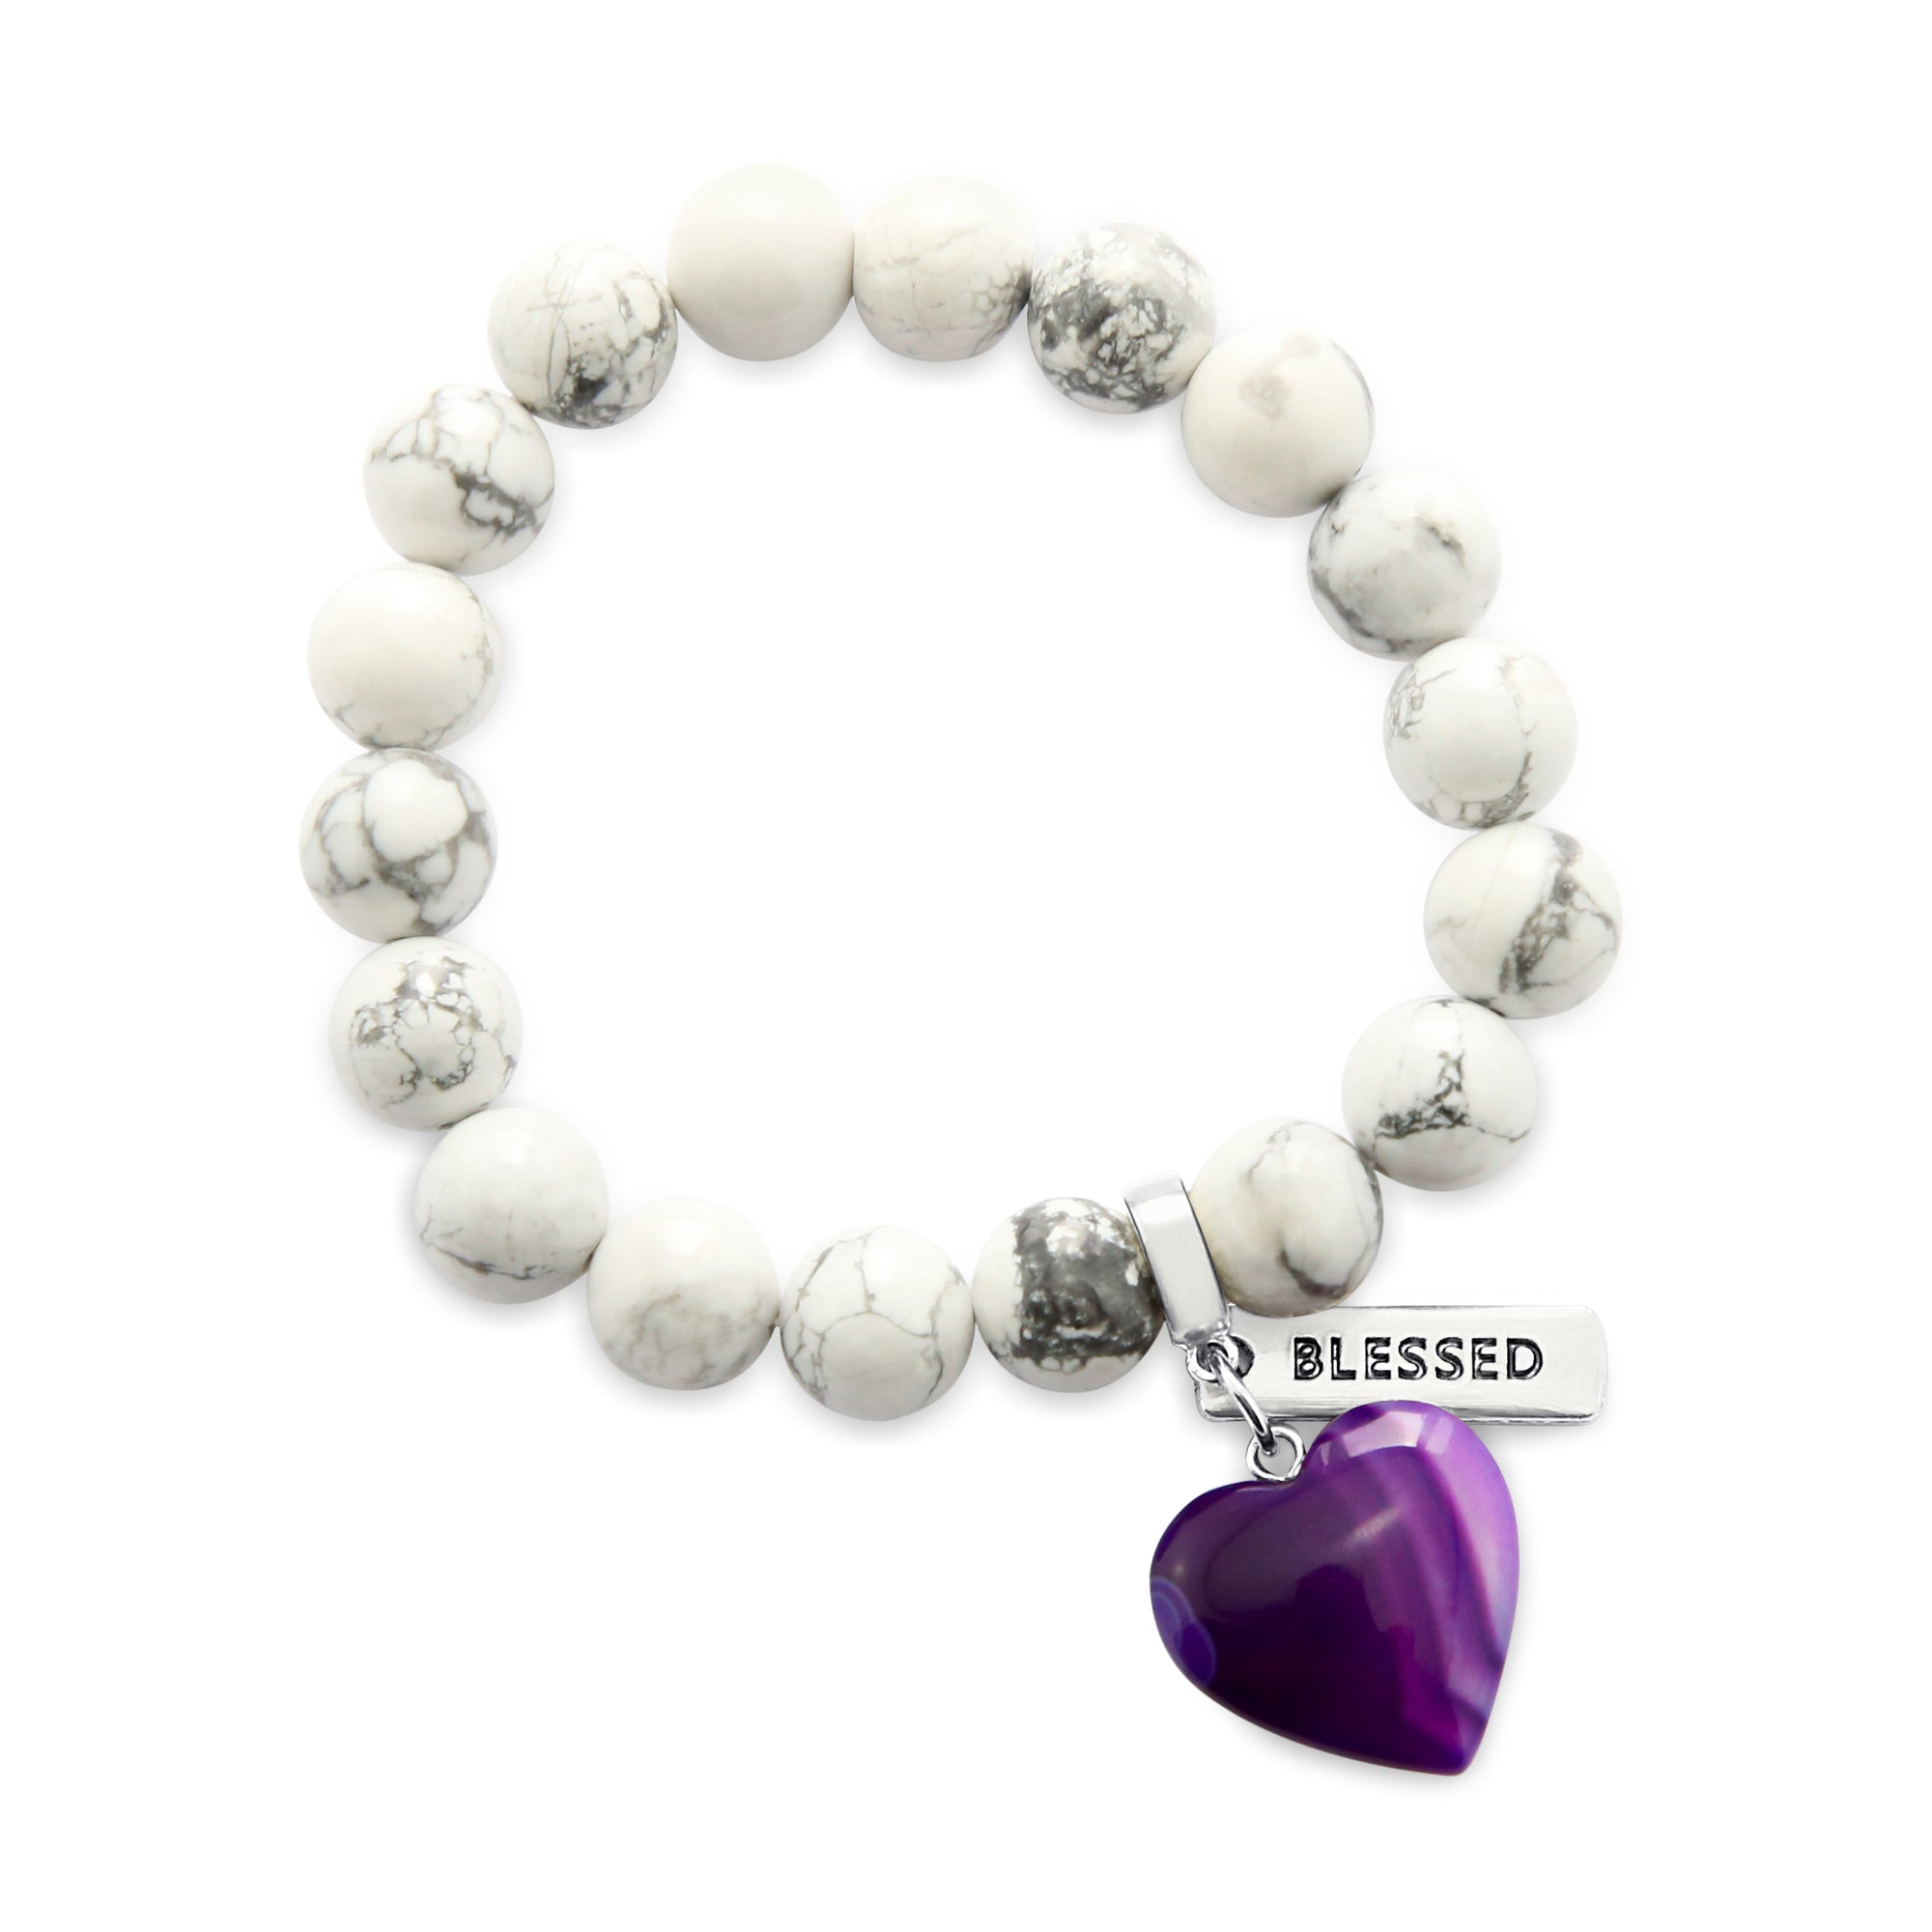 SWEETHEART Bracelet - 10mm WHITE MARBLE with Purple Striped Agate heart charm & Word Charm